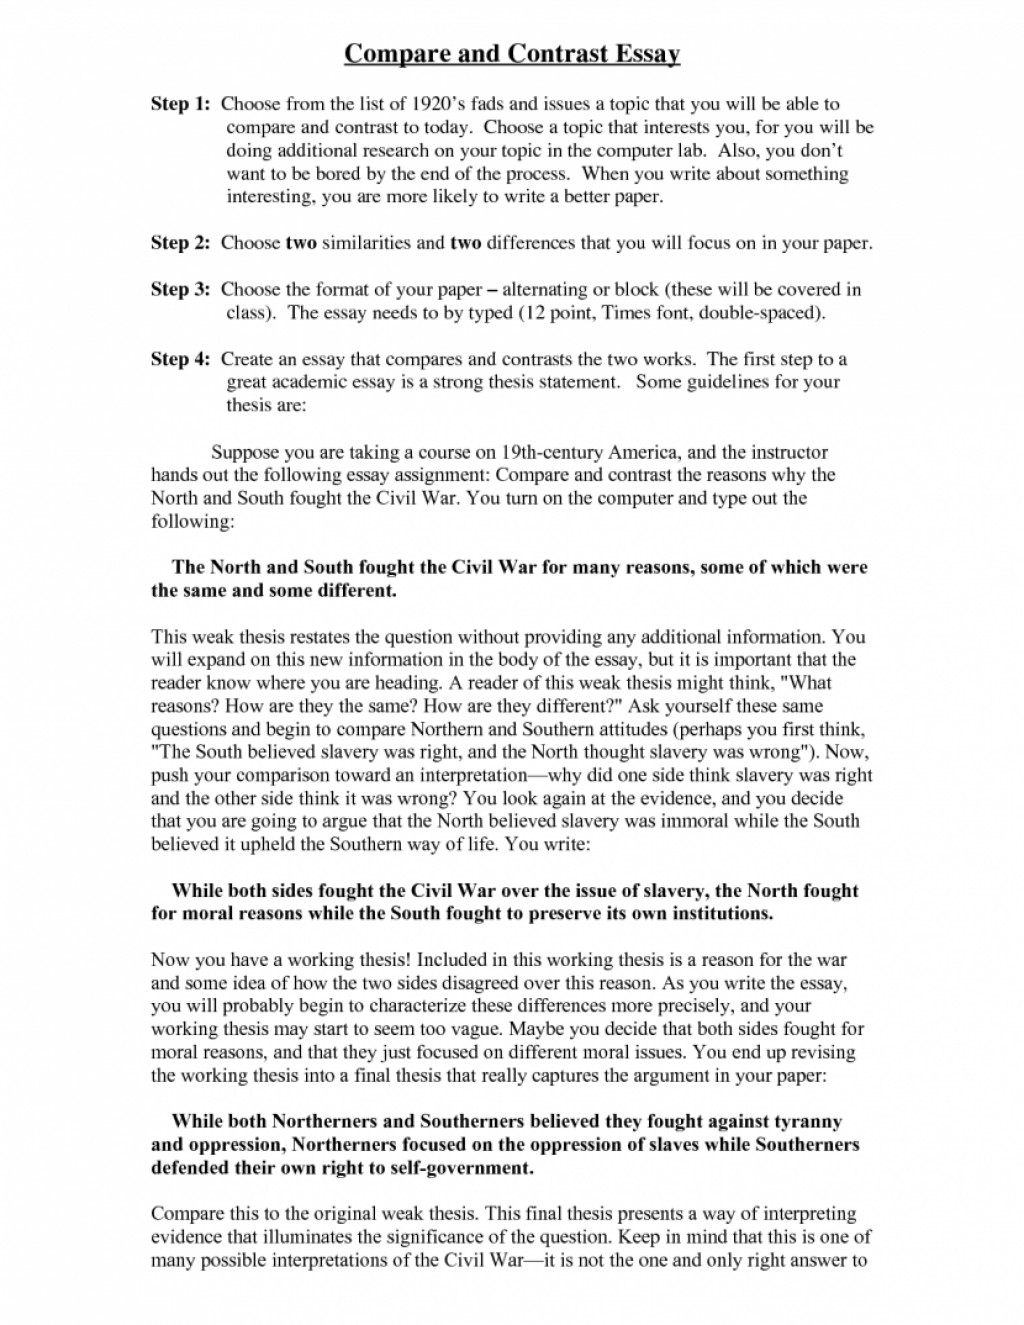 014 Comparative Essay Thesis Exceptional Pictures Design Compare At Writing Pdf Pare And Contrast Best Ideas Of Comparison Gabewins For Sample Archaicawful High School College 5th Grade Large